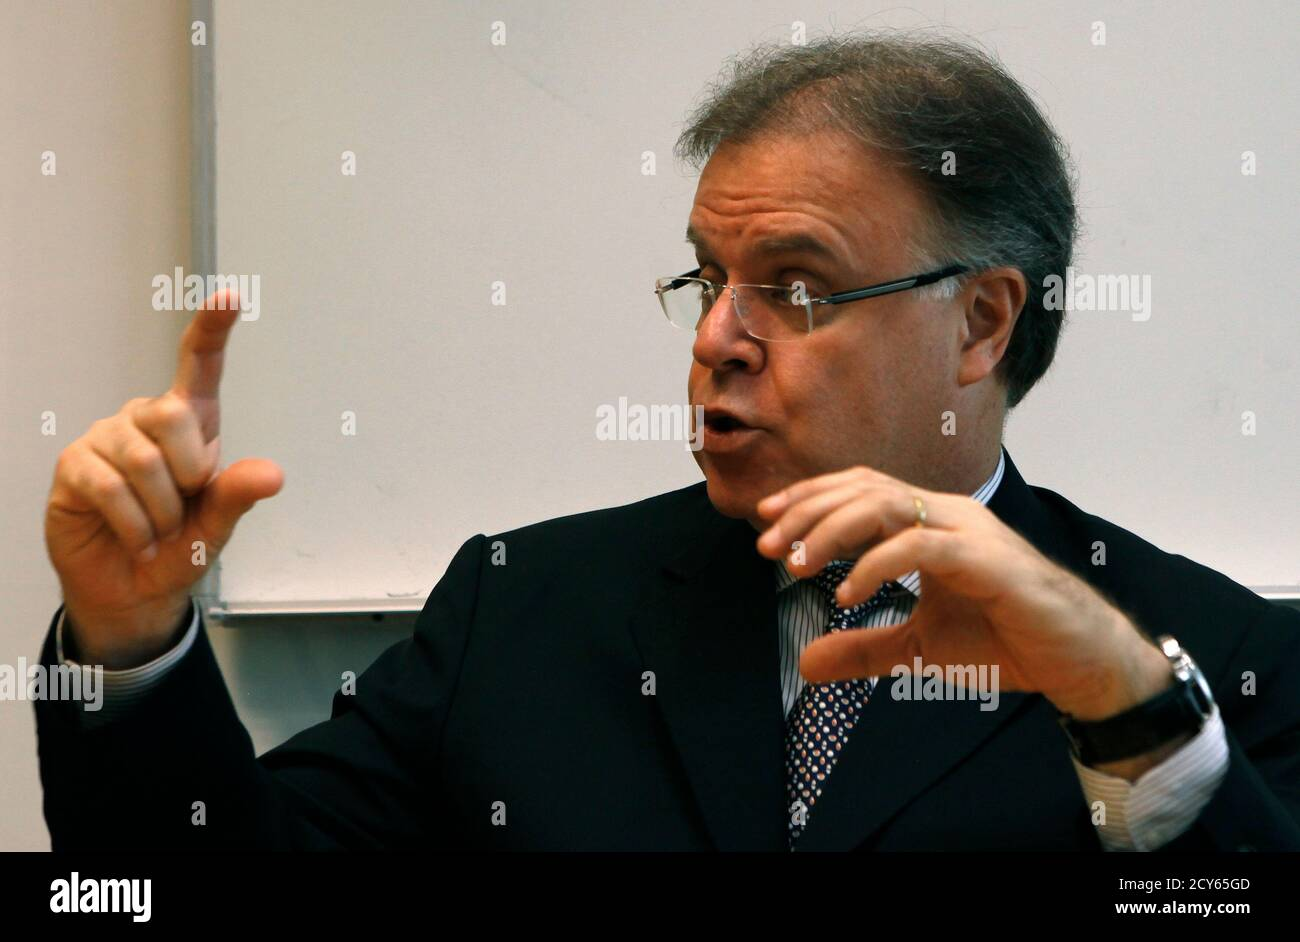 Britaldo Soares Chief Executive Officer of Brazil's largest power distribution company, AES Eletropaulo, speaks during the Reuters Latam Investment Summit 2012 in Sao Paulo June 1, 2012. REUTERS/Paulo Whitaker (BRAZIL - Tags: BUSINESS) Foto de stock